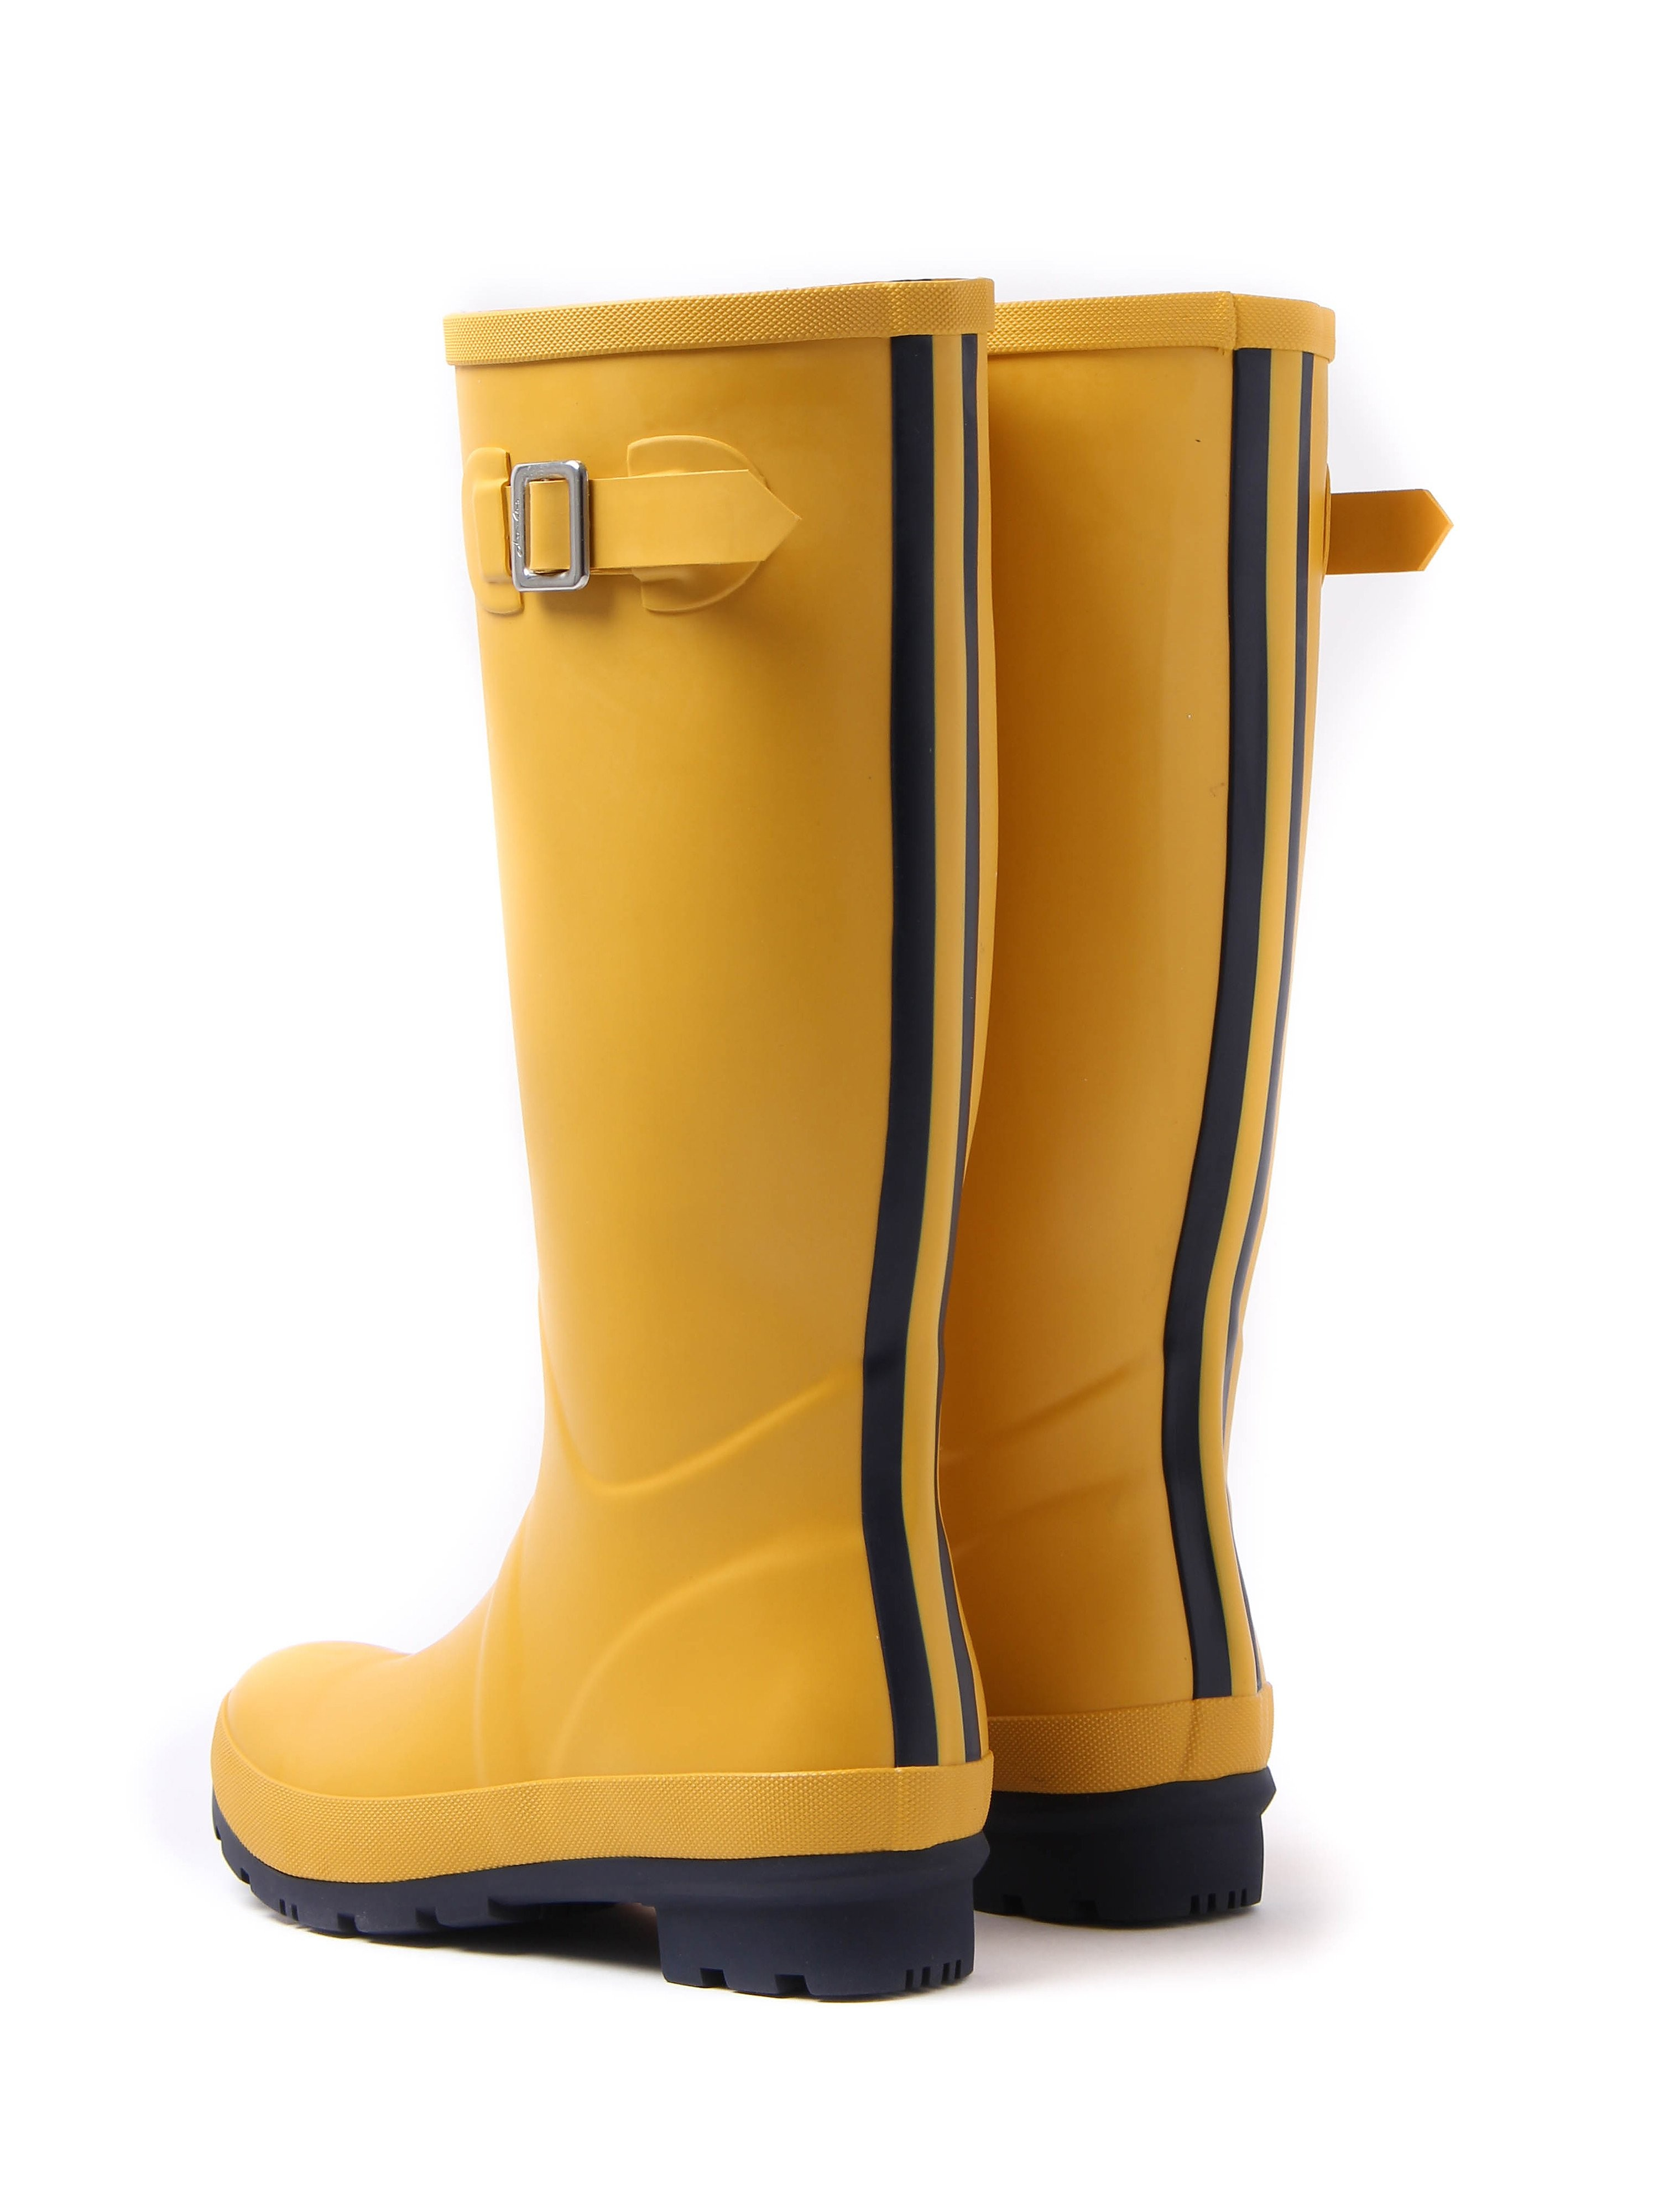 Joules Women's Fieldwelly Full Height Rubber Wellington Boot - Antgold